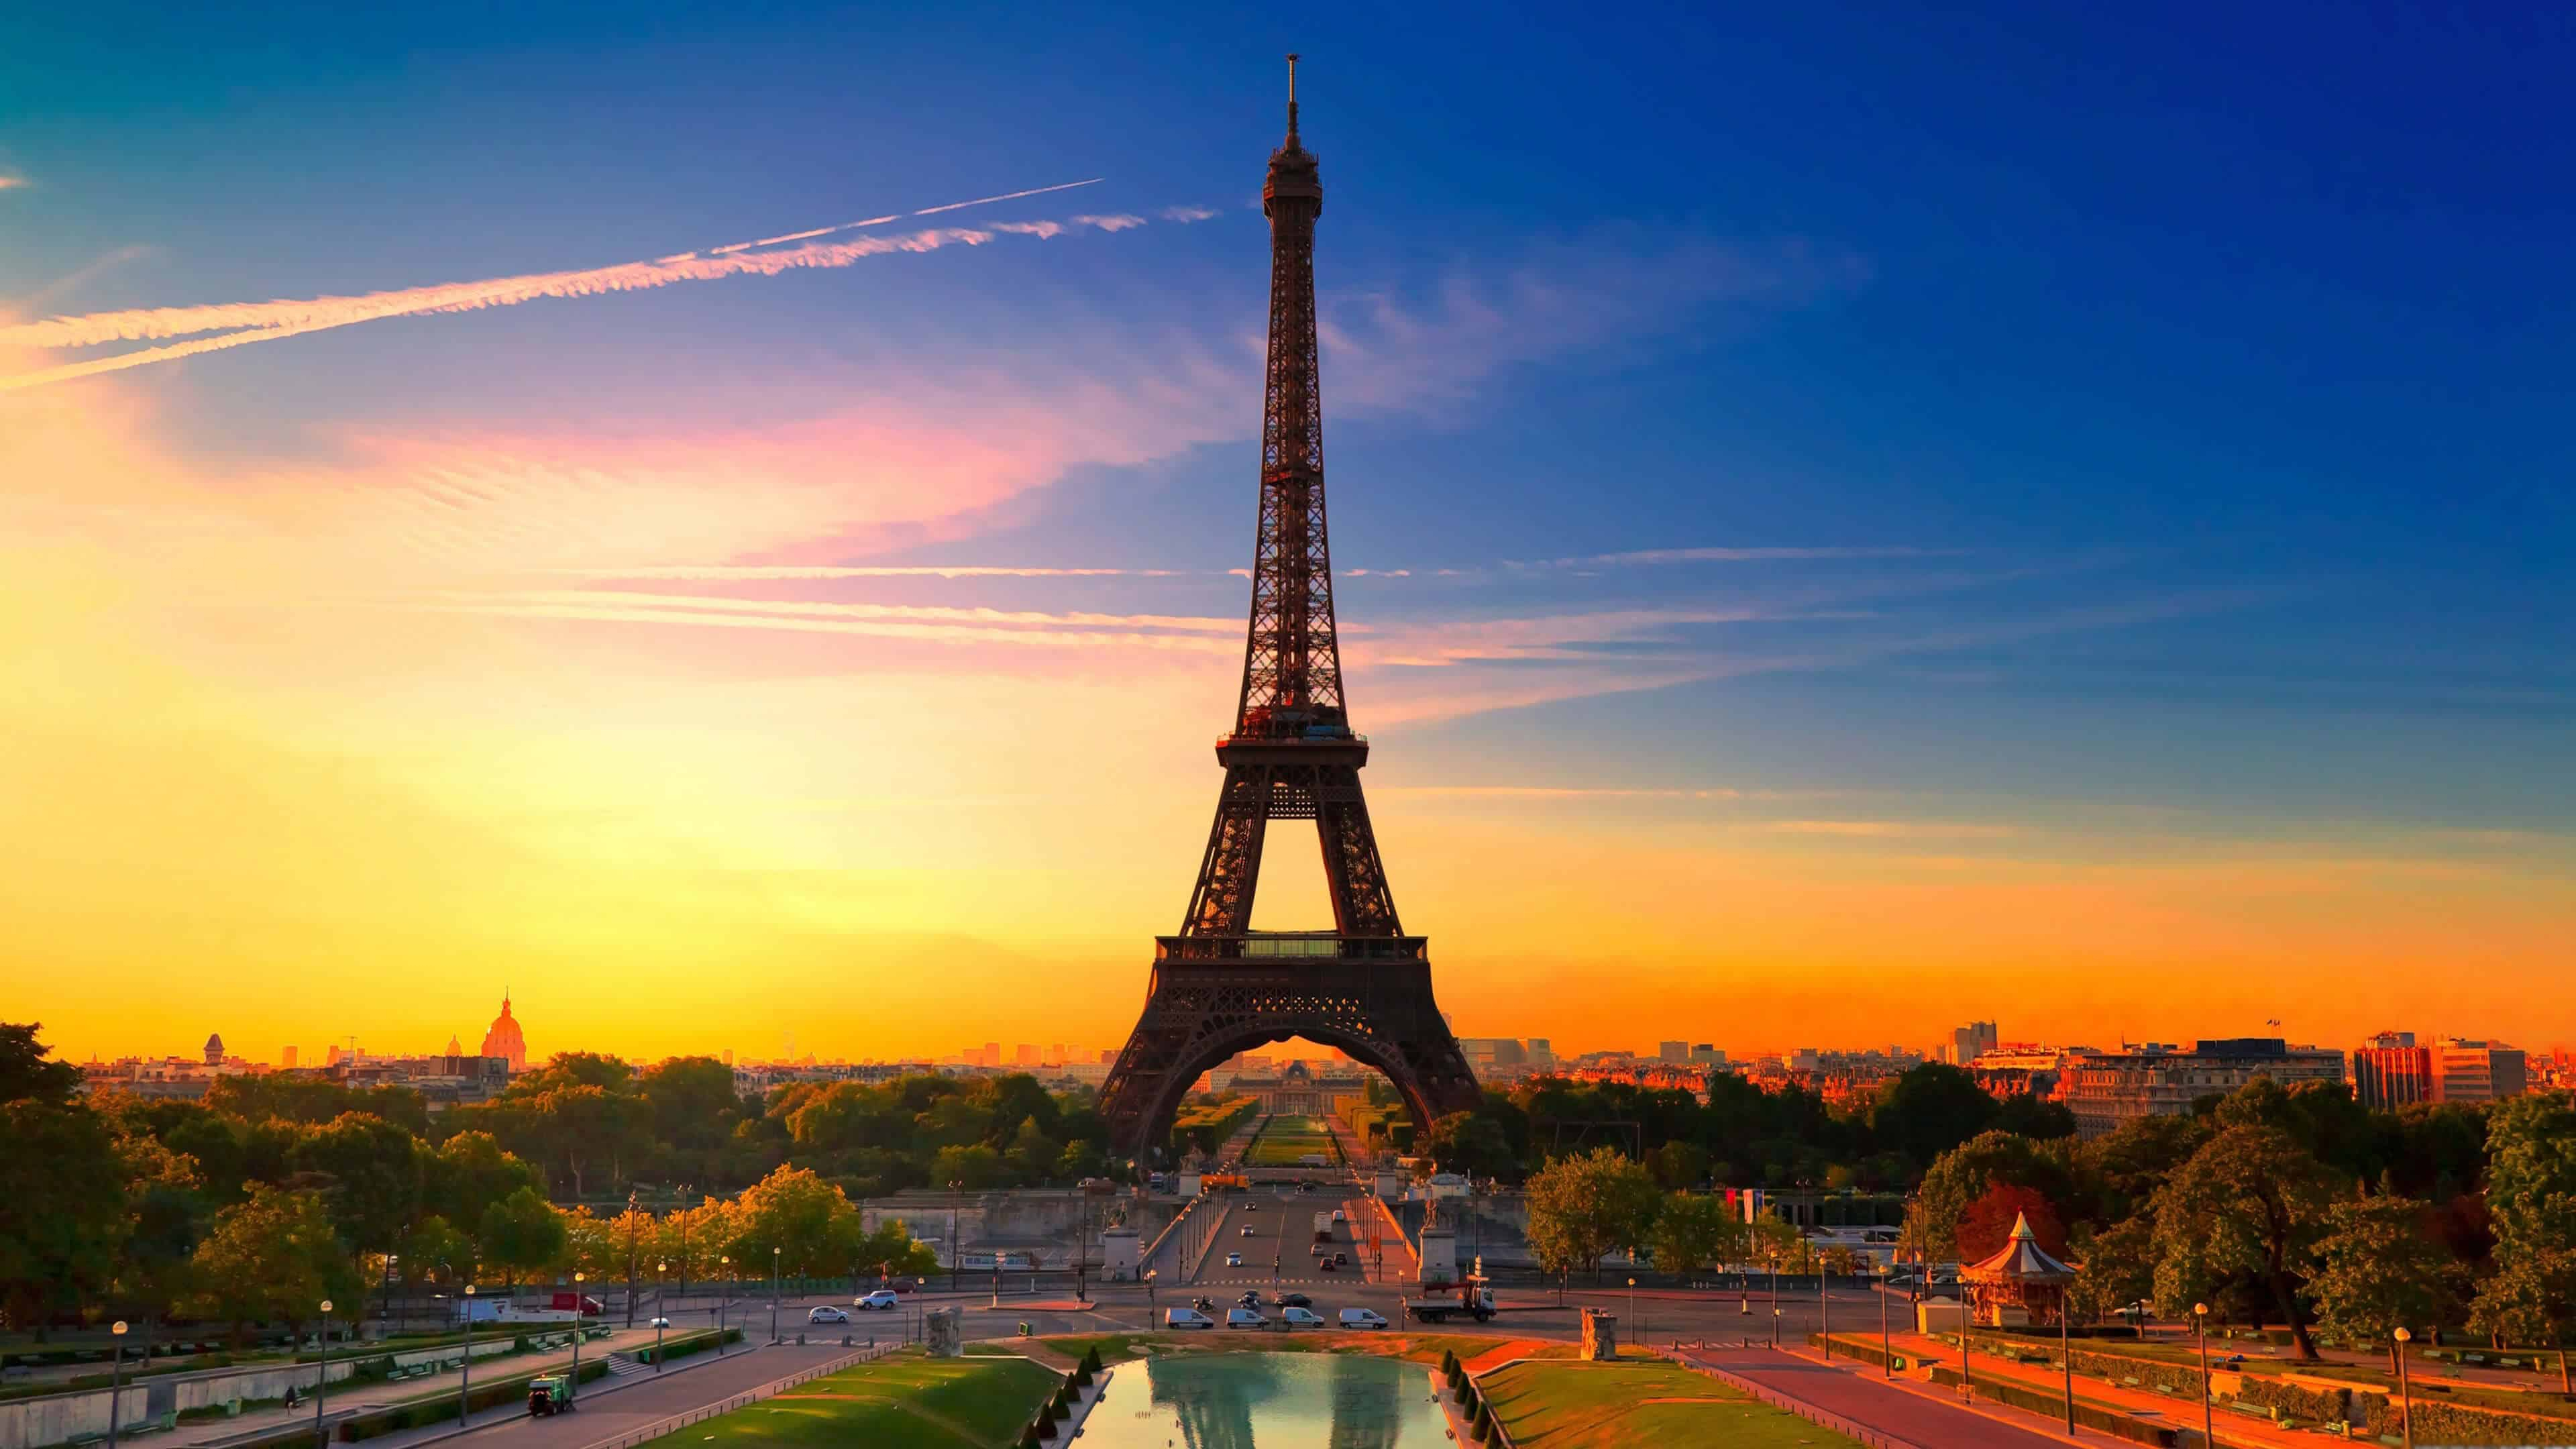 eiffel tower at sunset paris france uhd 4k wallpaper | pixelz